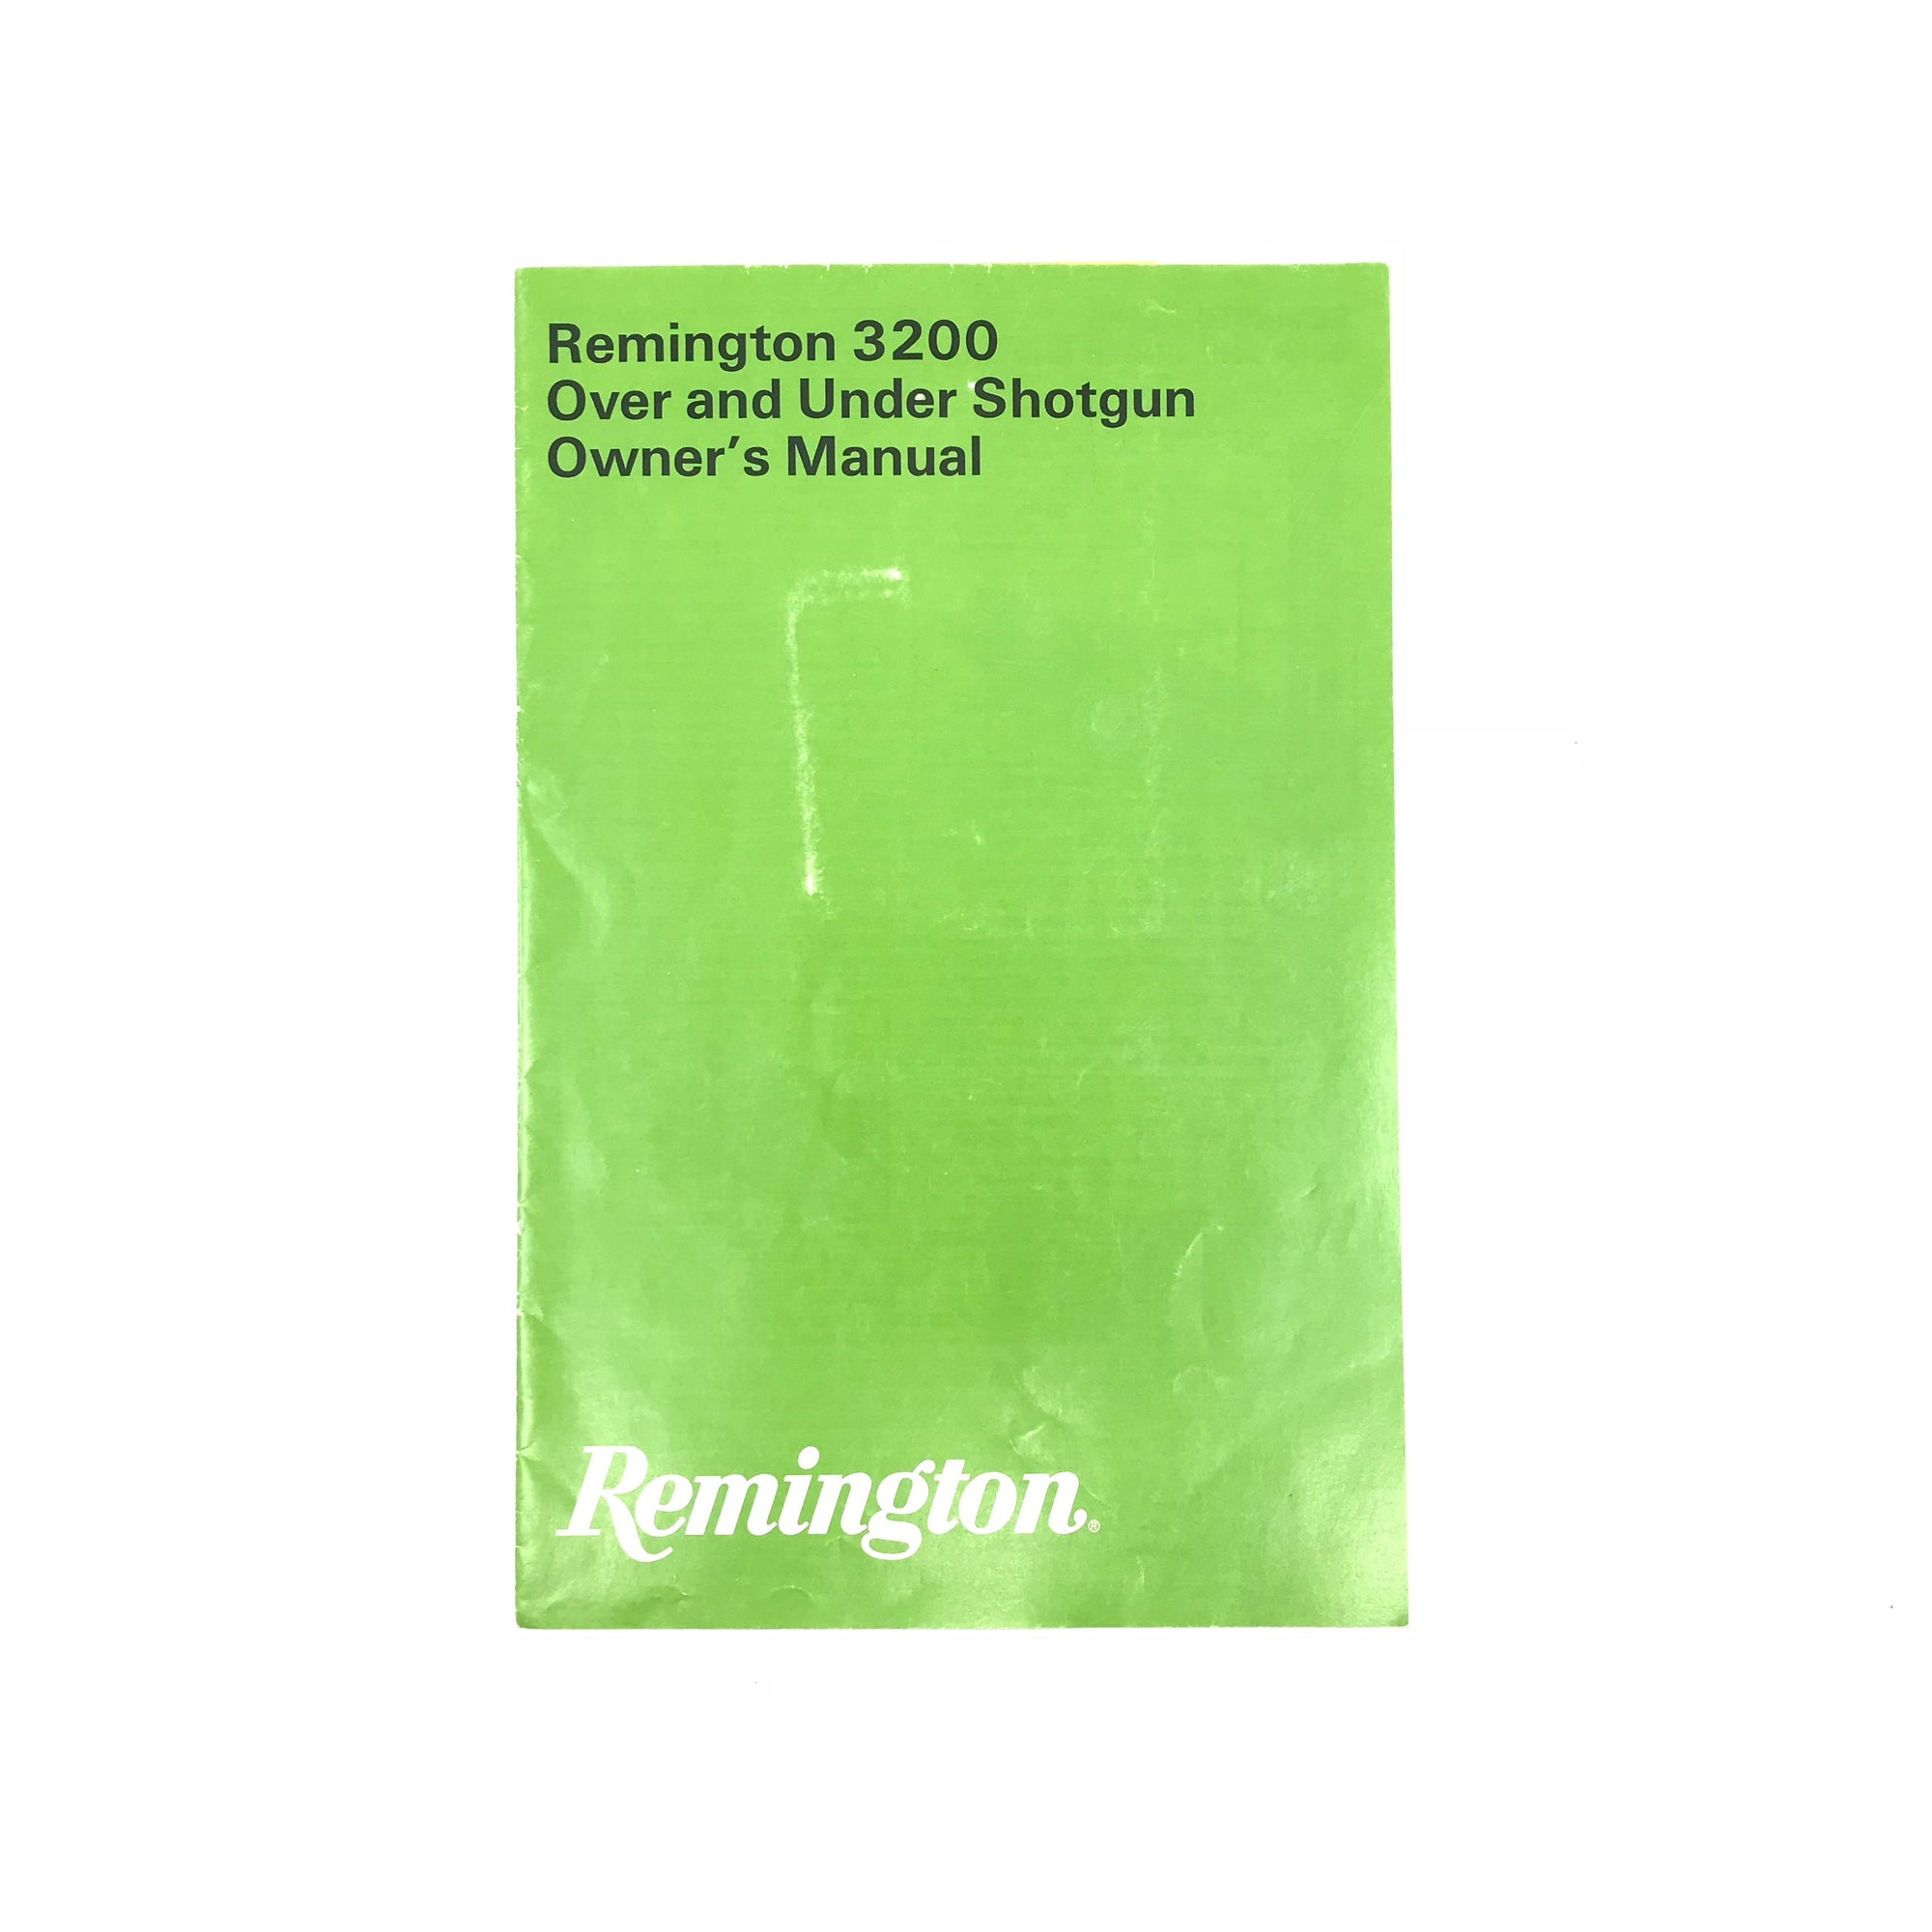 Remington 3200 Over & Under Shotgun Owner's Manual,Firearm Manuals- Canada Brass